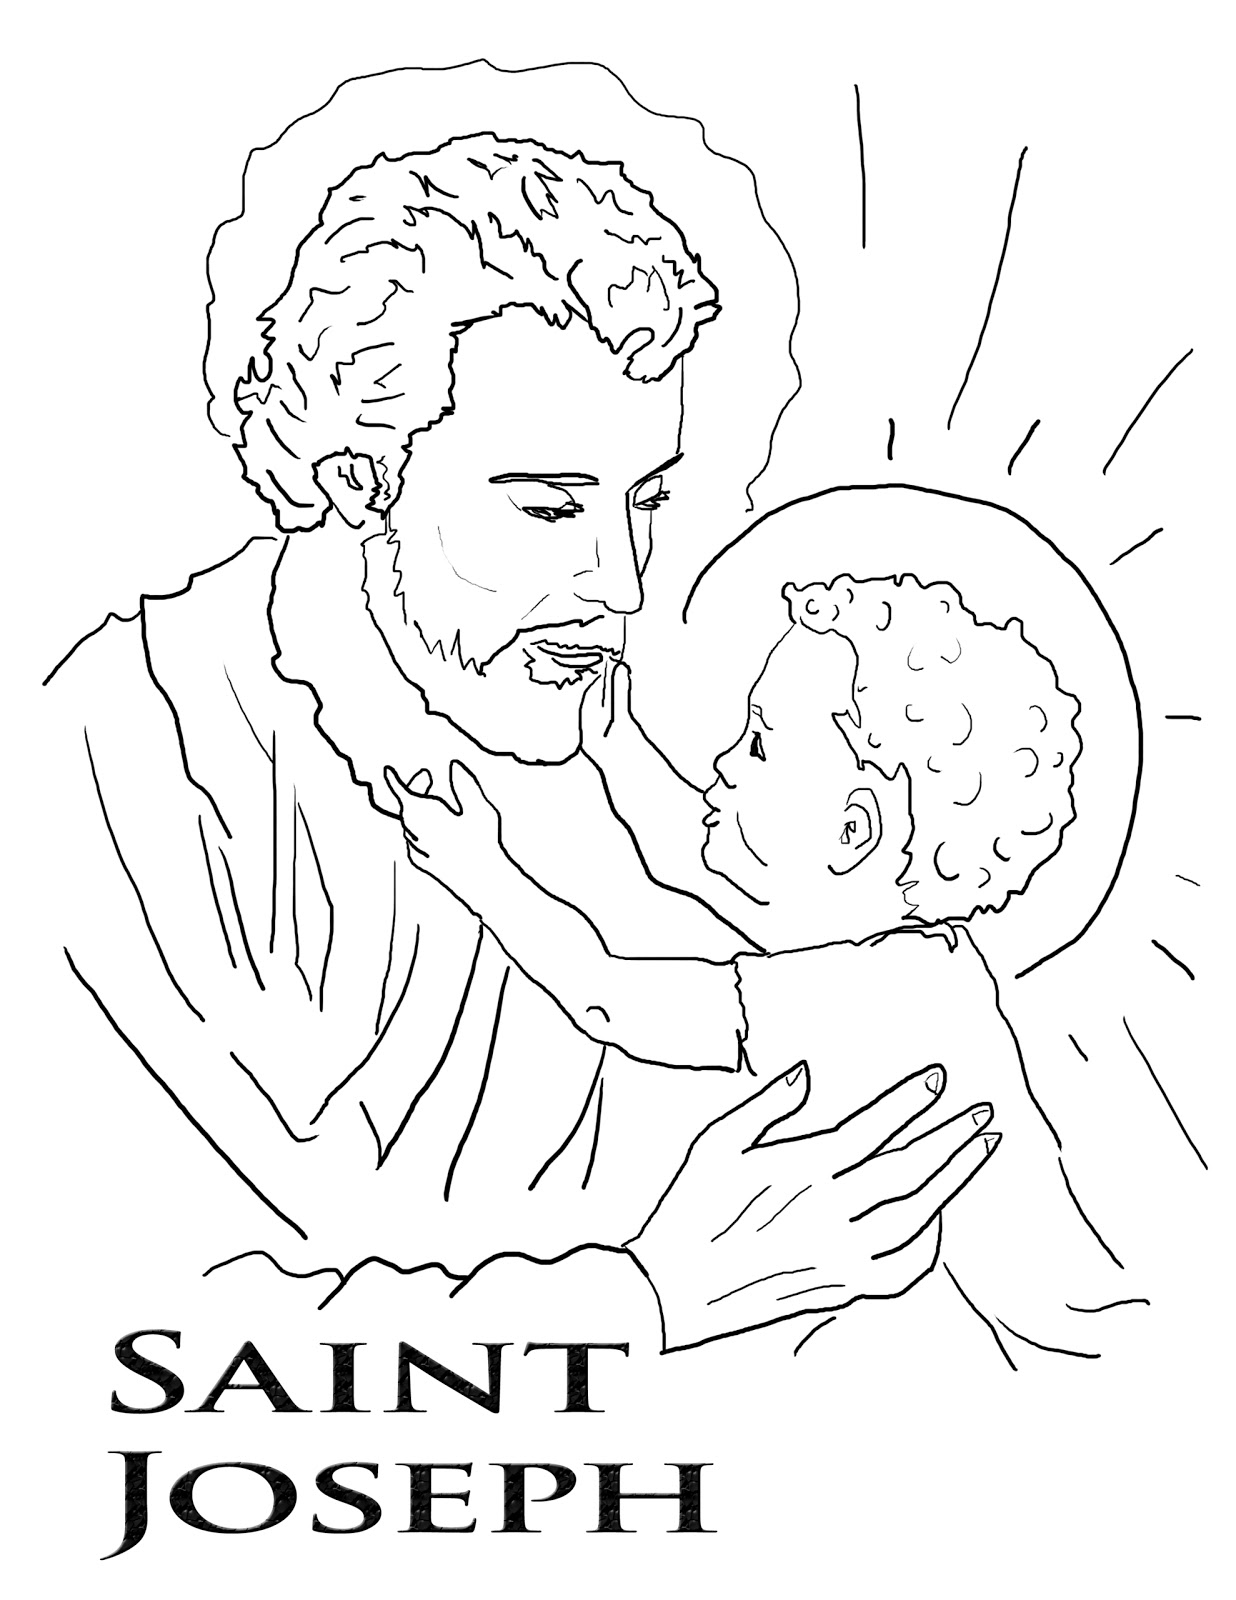 josephs coloring pages - photo#35